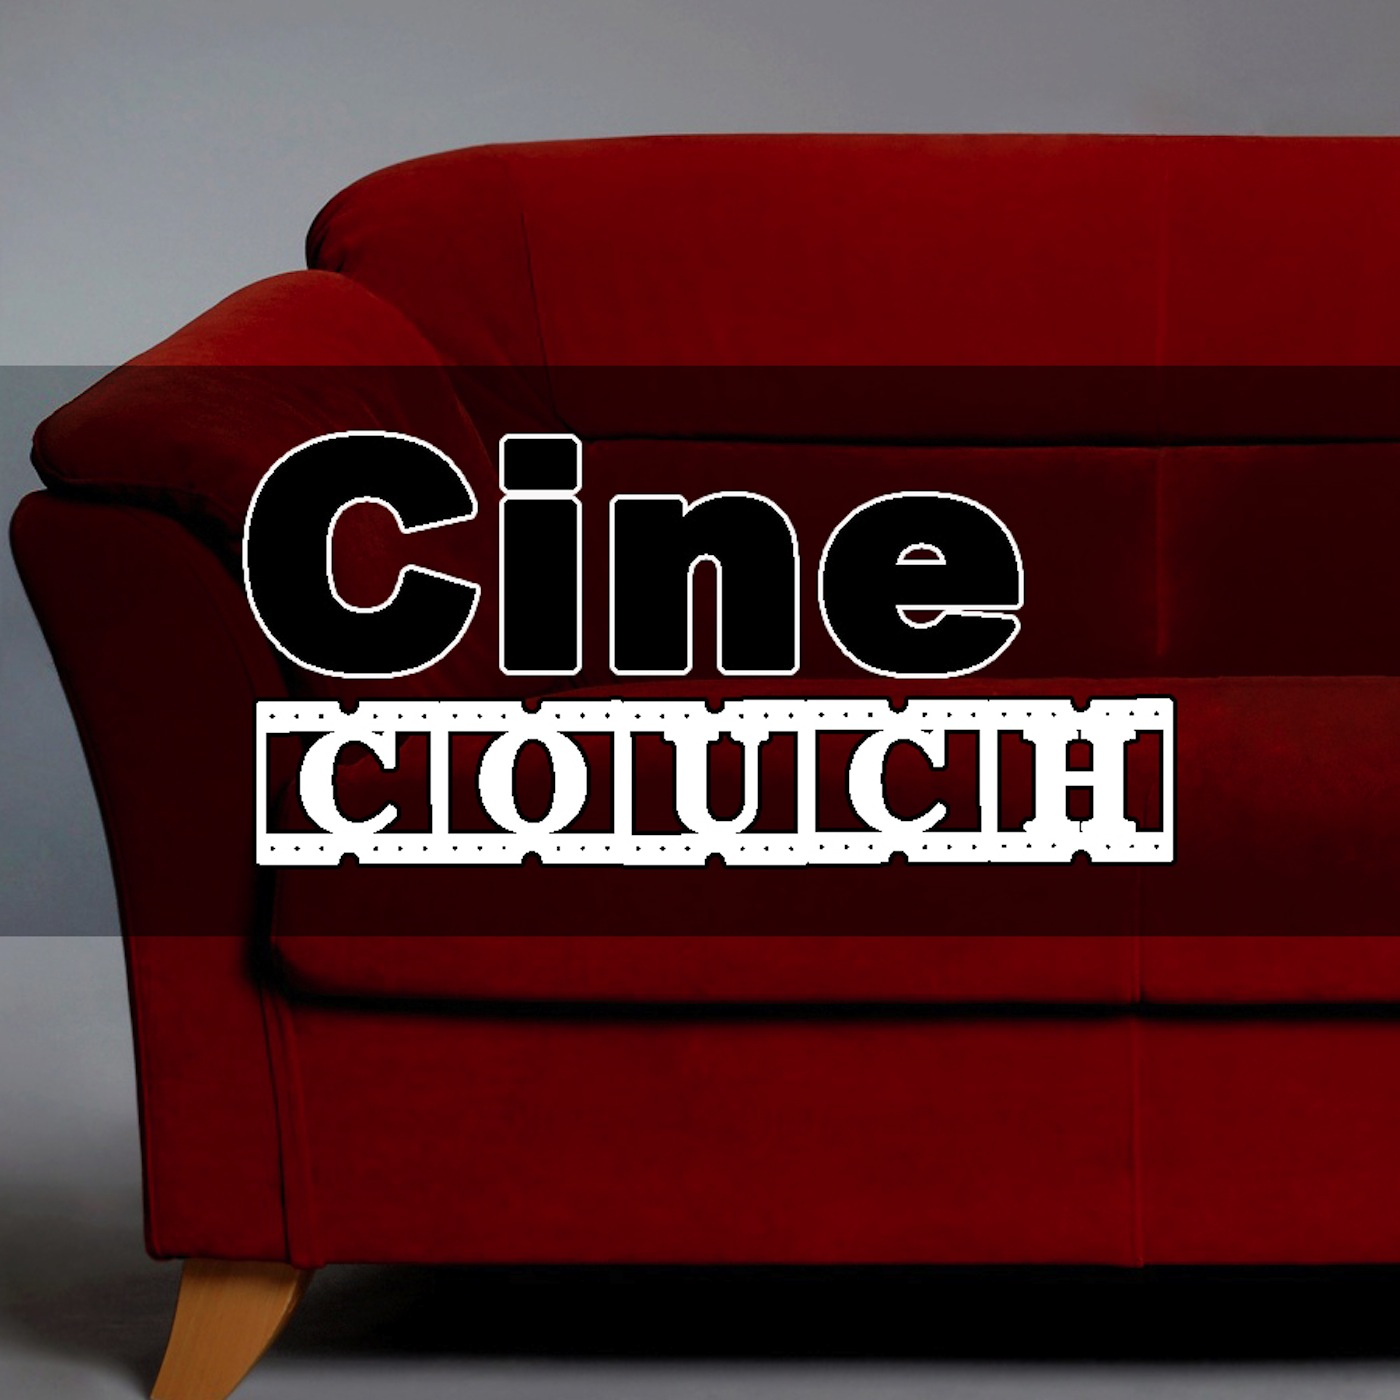 CineCouch – Folge 271: Amer [Gast: Arne/Enough Talk!]